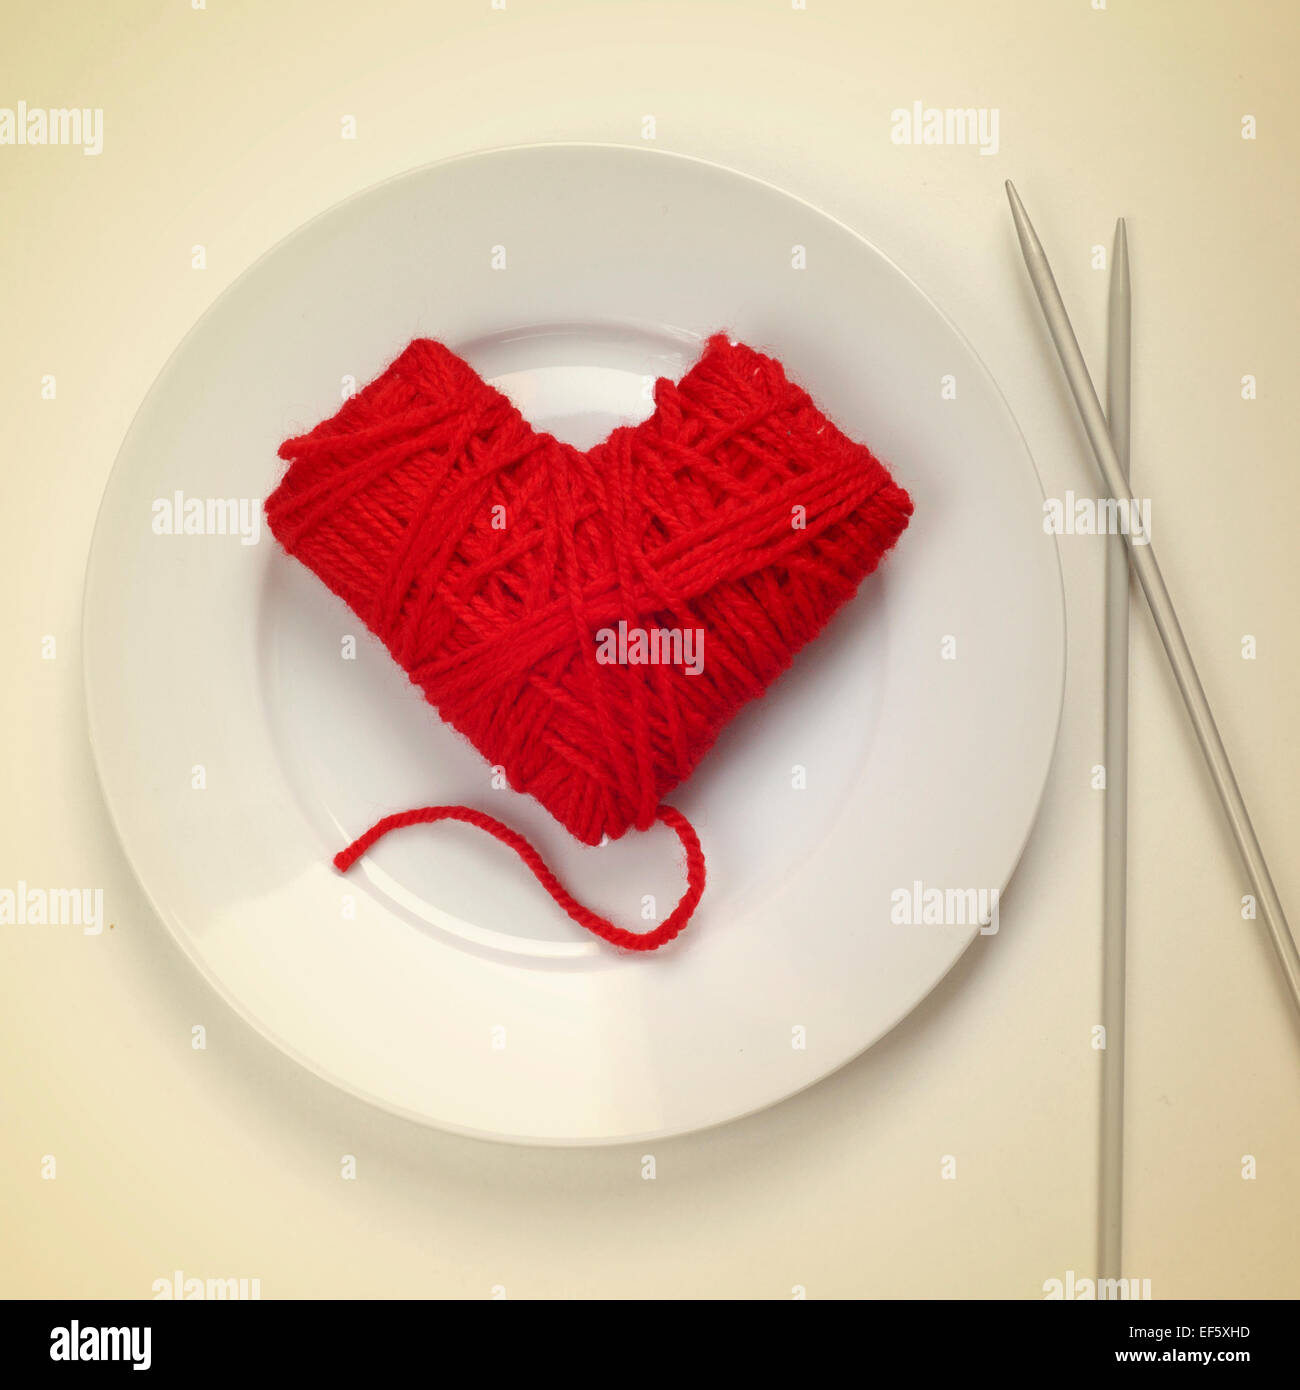 a heart-shaped ball of yarn in a plate and knitting needles at the side, as the flatware, with a retro effect - Stock Image